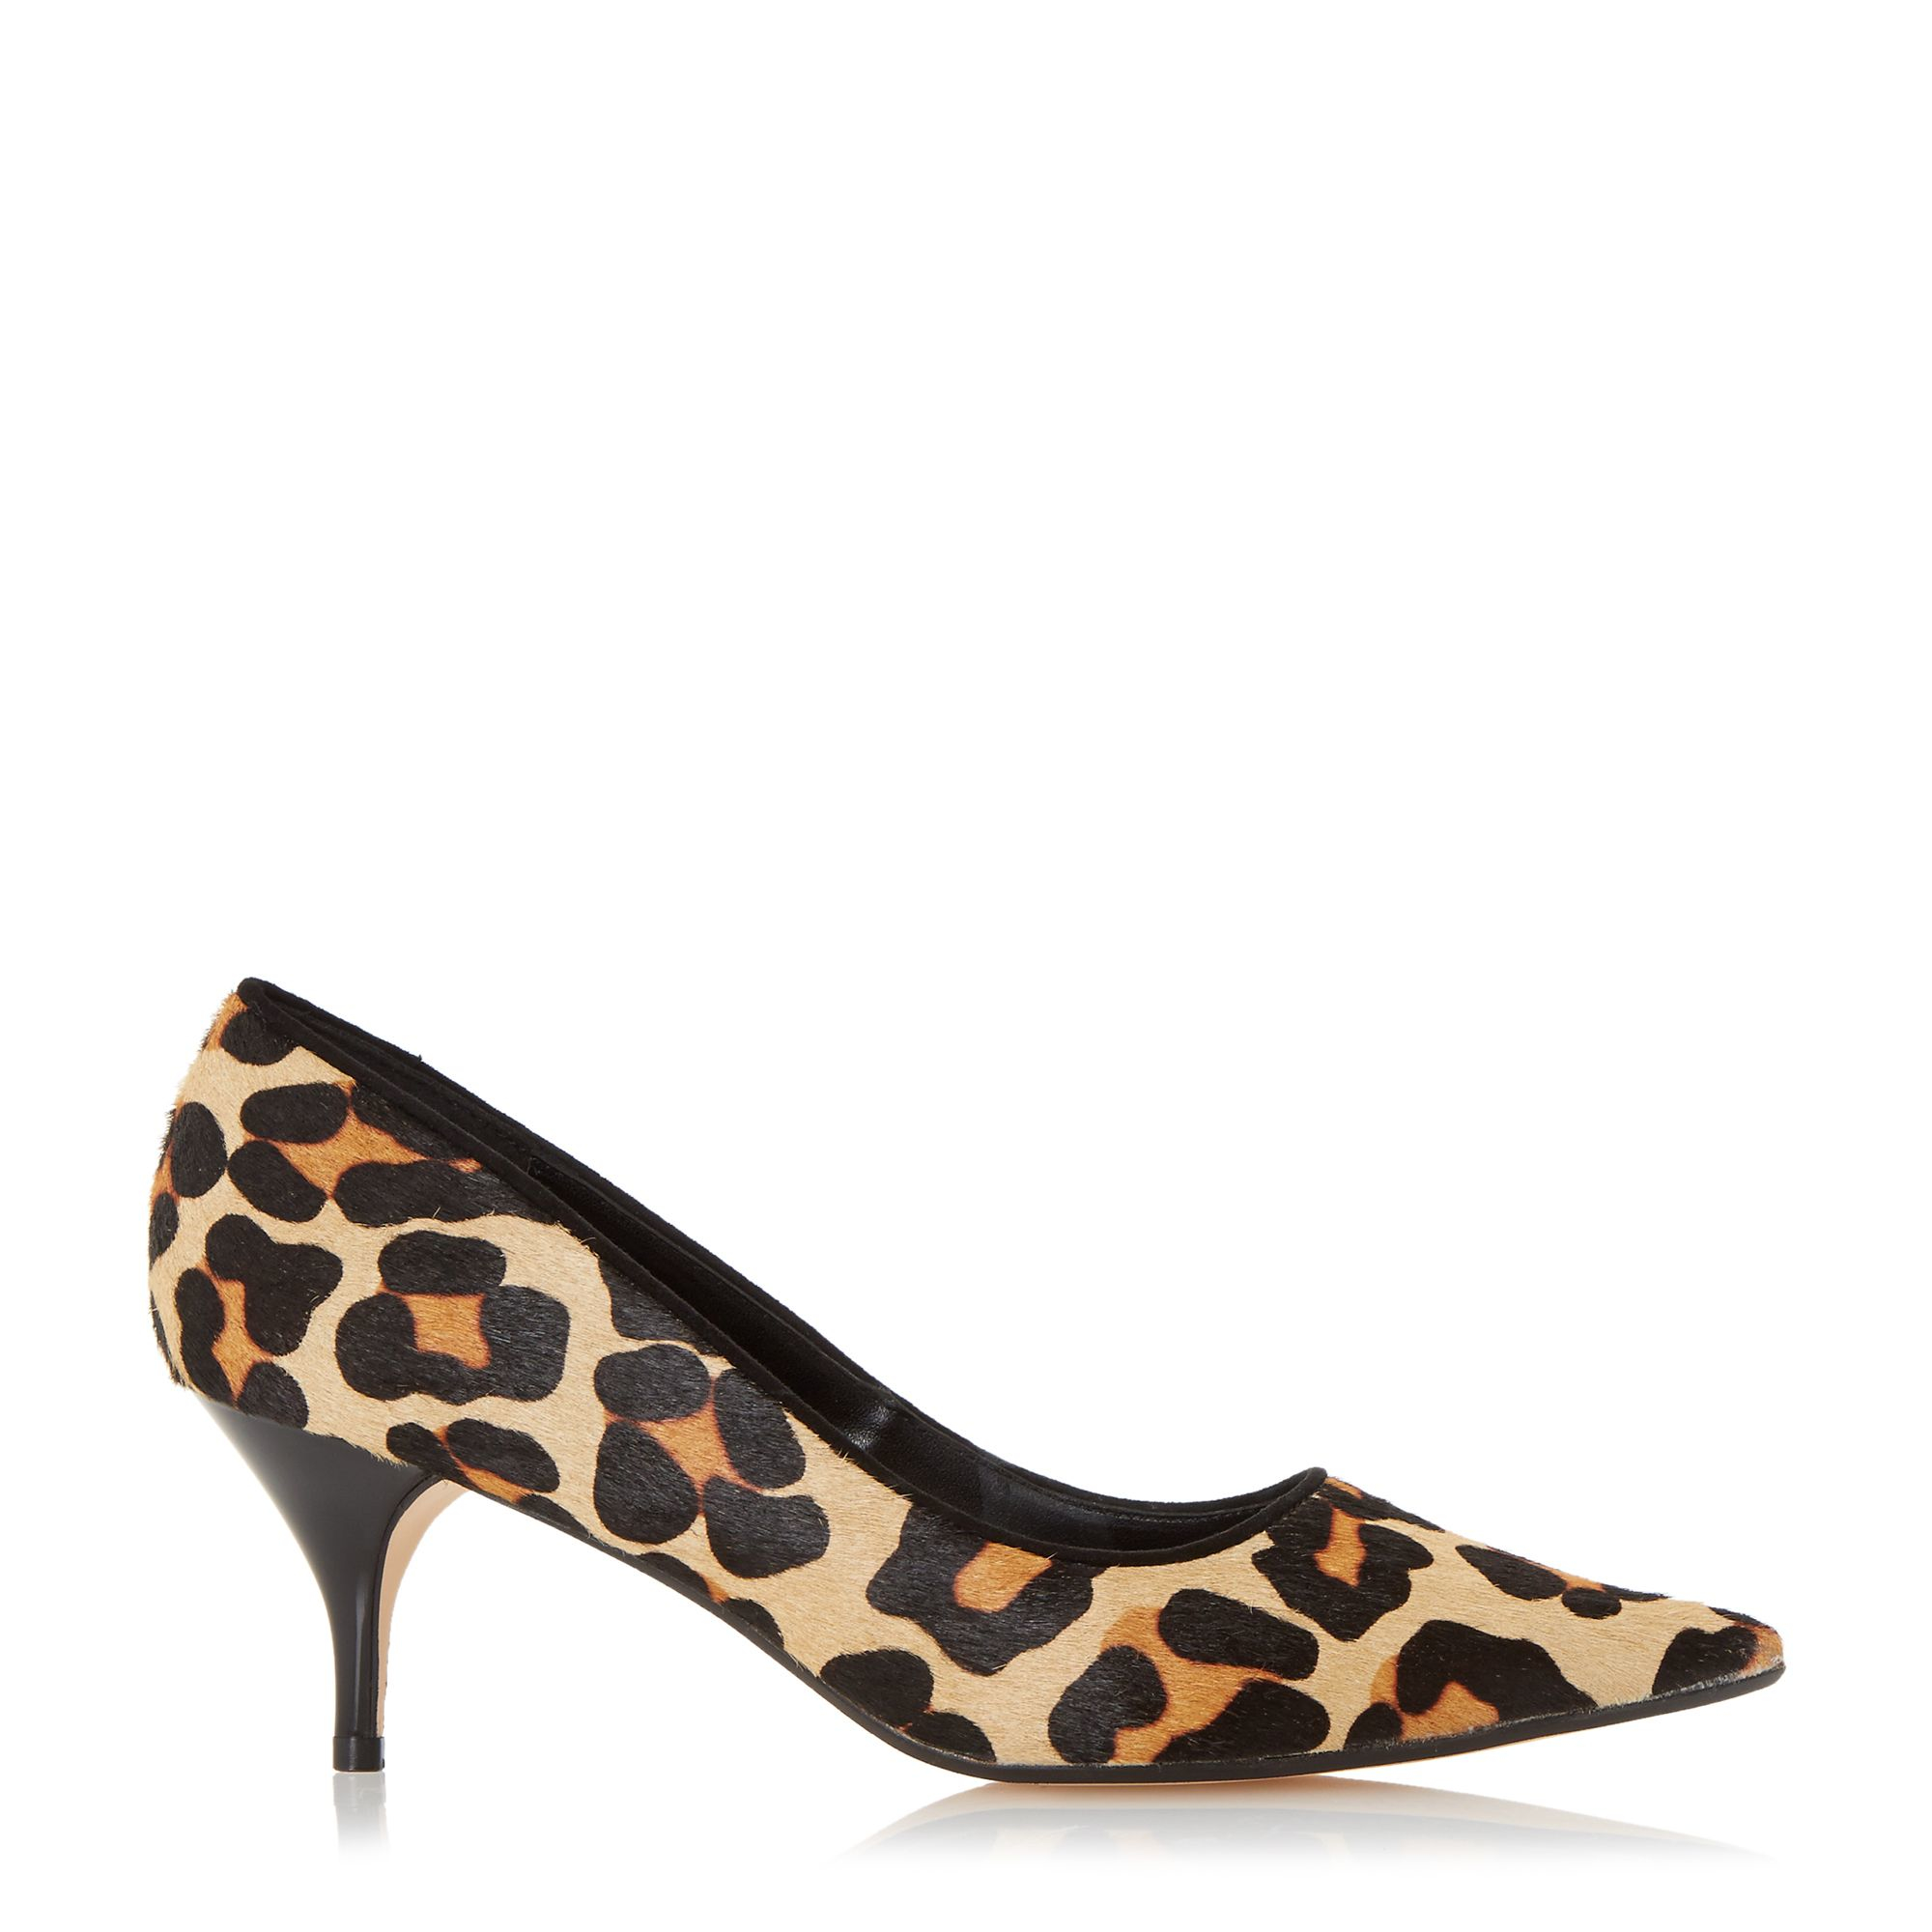 Leopard Print Heels. Ever chic, leopard print heels look posh in any environment. Sauntering through the urban jungle, employ pumps to blend into the fashion savvy habitat. Infuse the highest dosage of leopard in a look by opting for the full enclosure of closed .